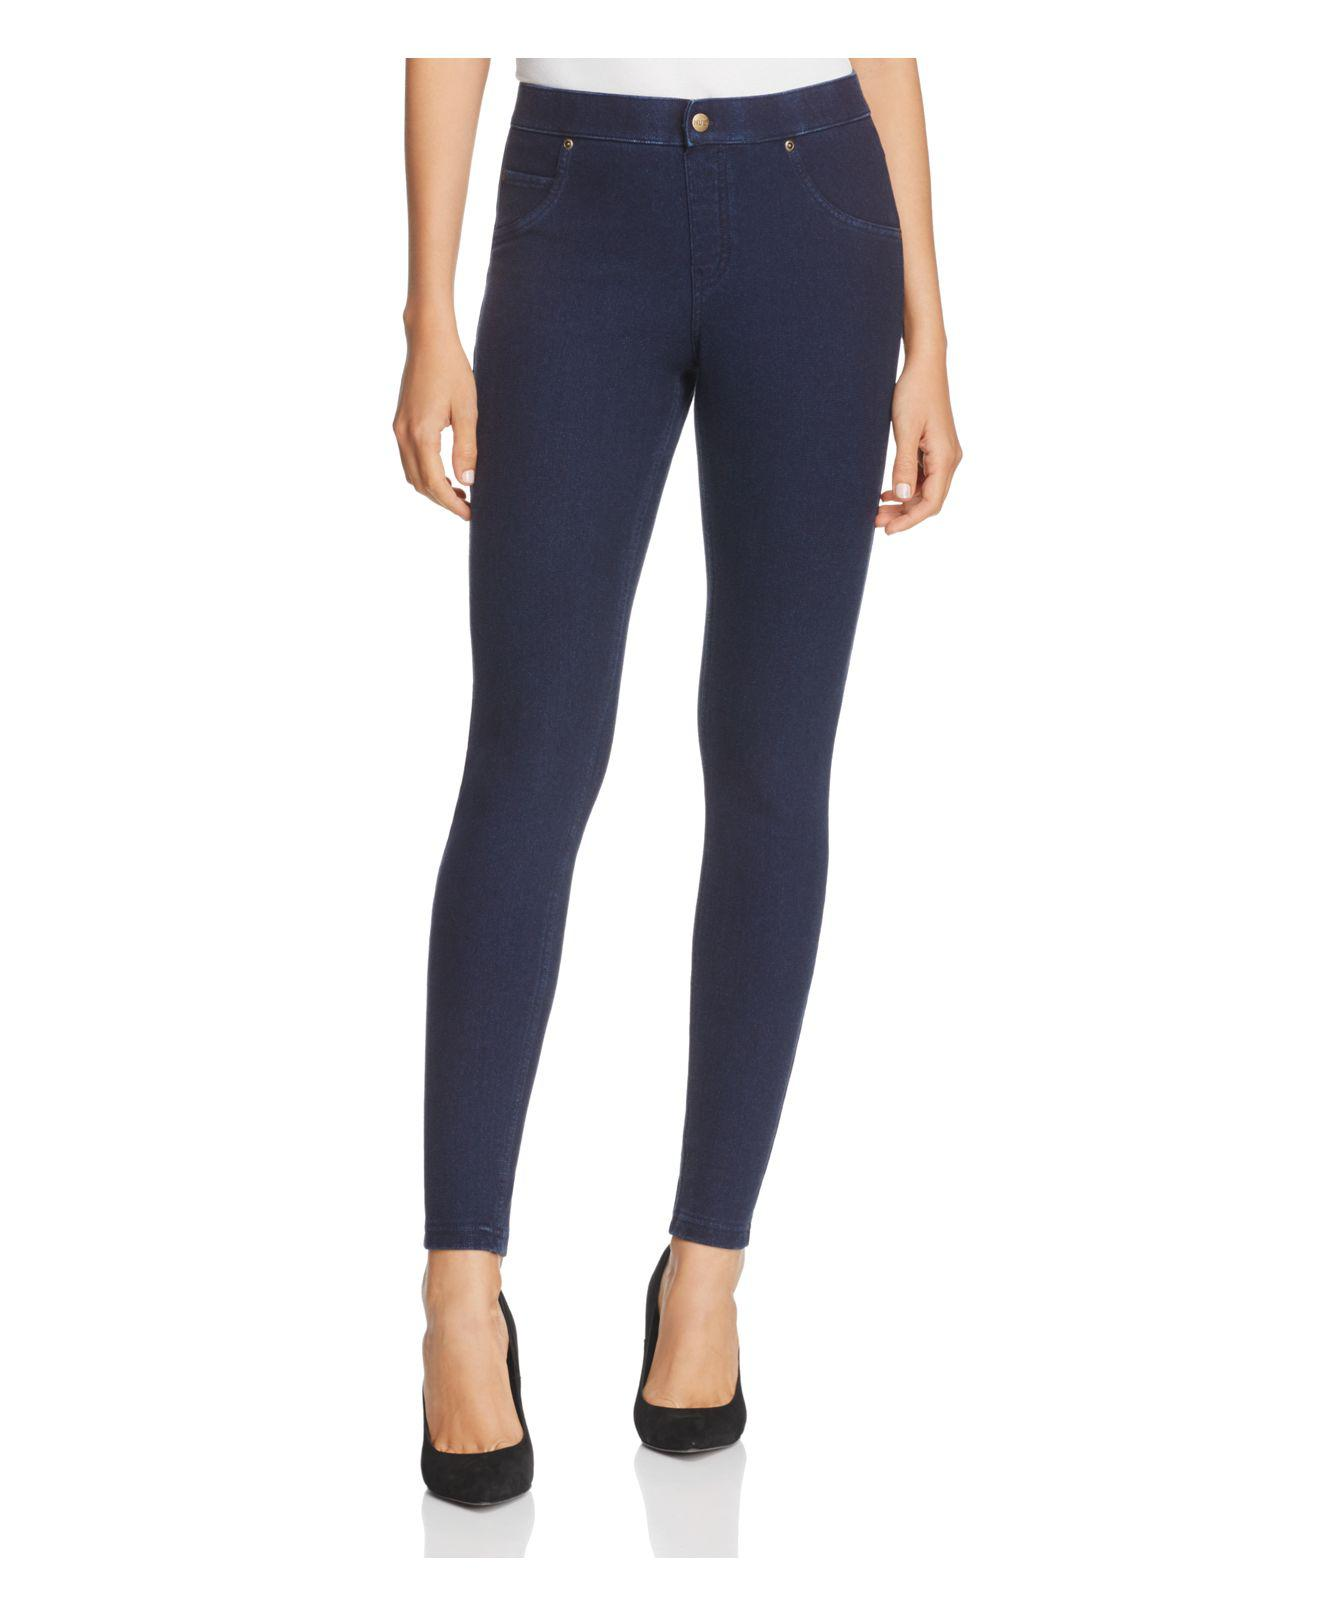 e50354ef52e711 Lyst - Hue Fleece Lined Denim Leggings in Blue